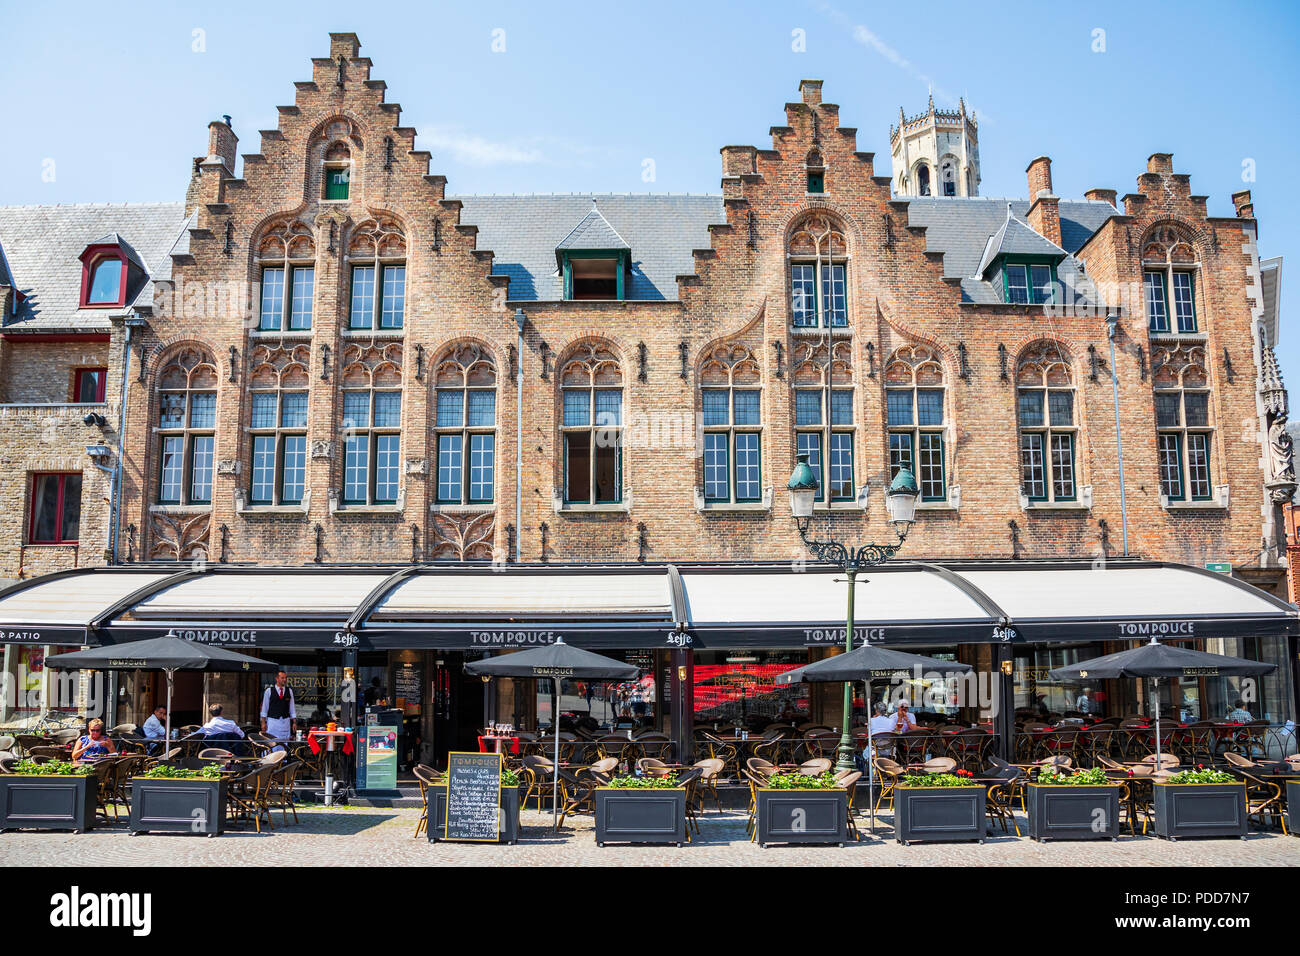 Restaurant and cafe in an Burg, in a traditional styled building, Bruges, Belgium Stock Photo